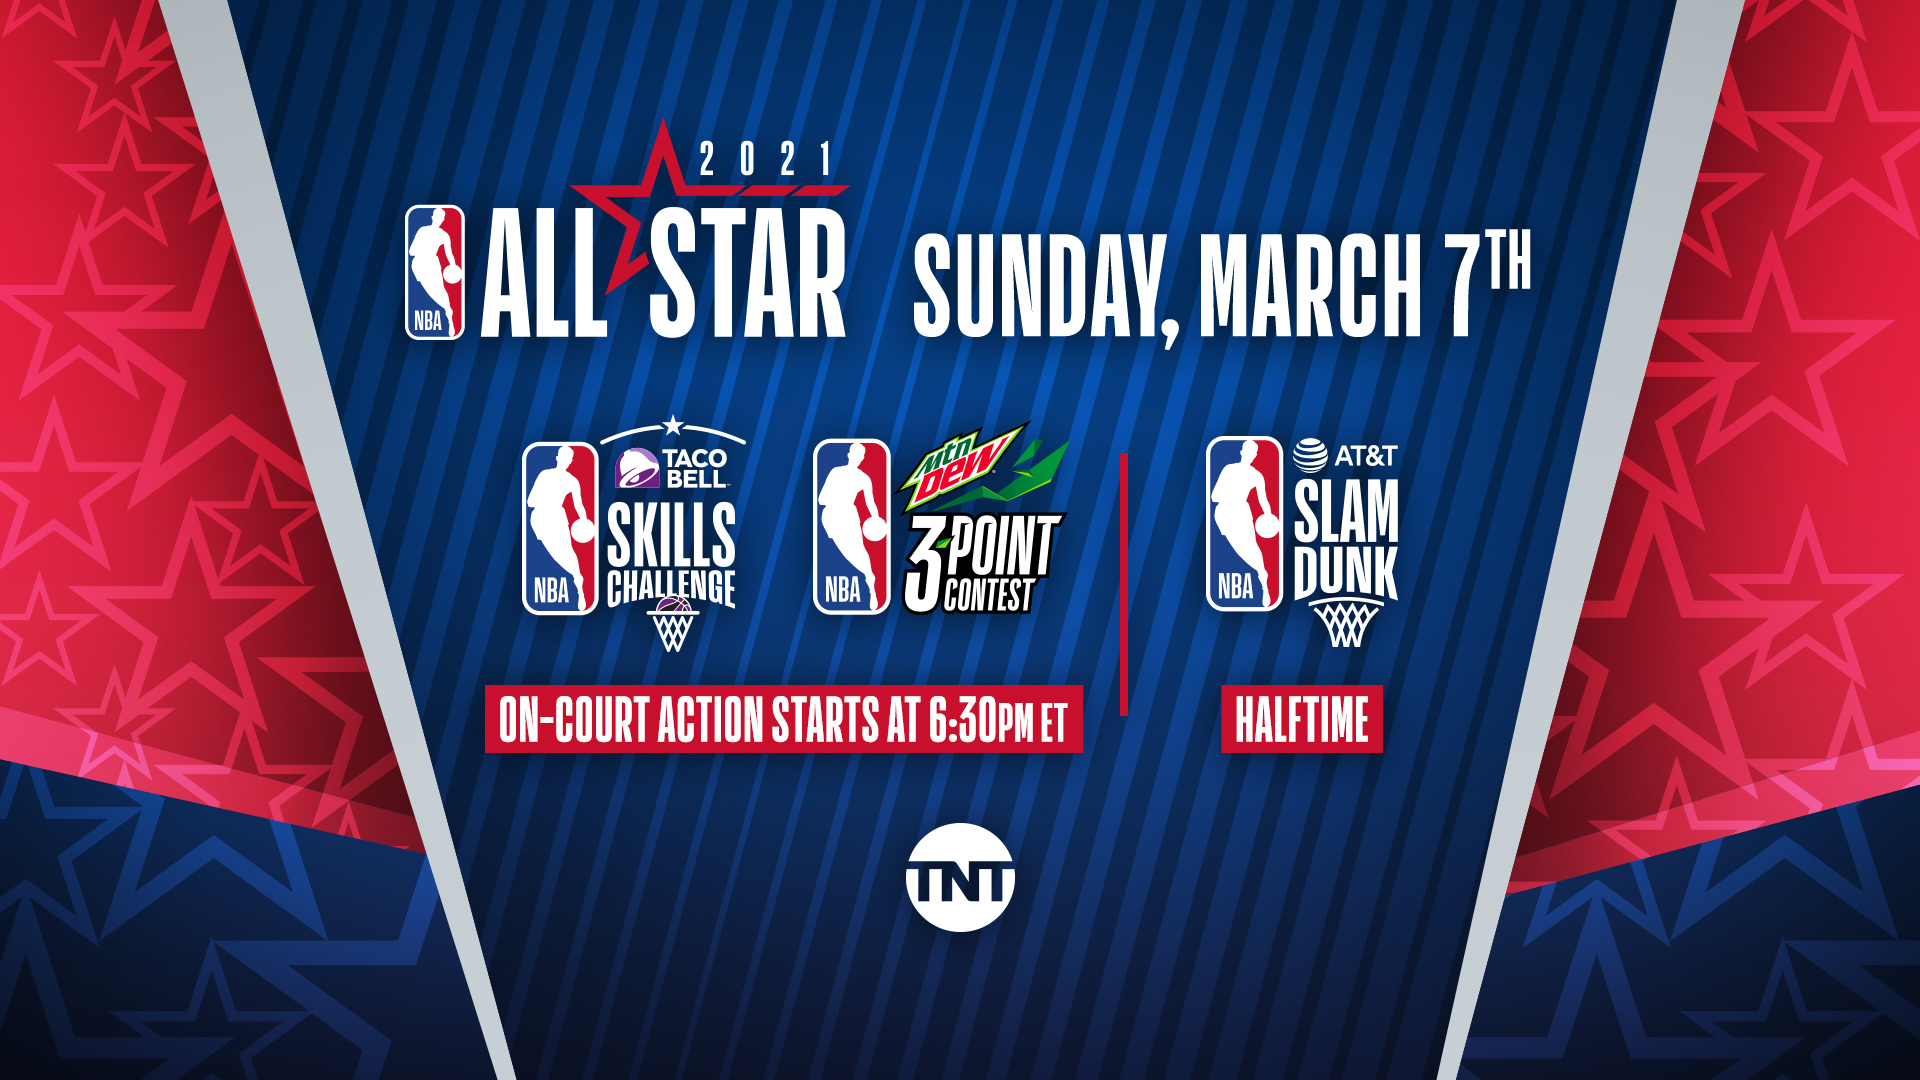 Participants announced for All-Star skills events